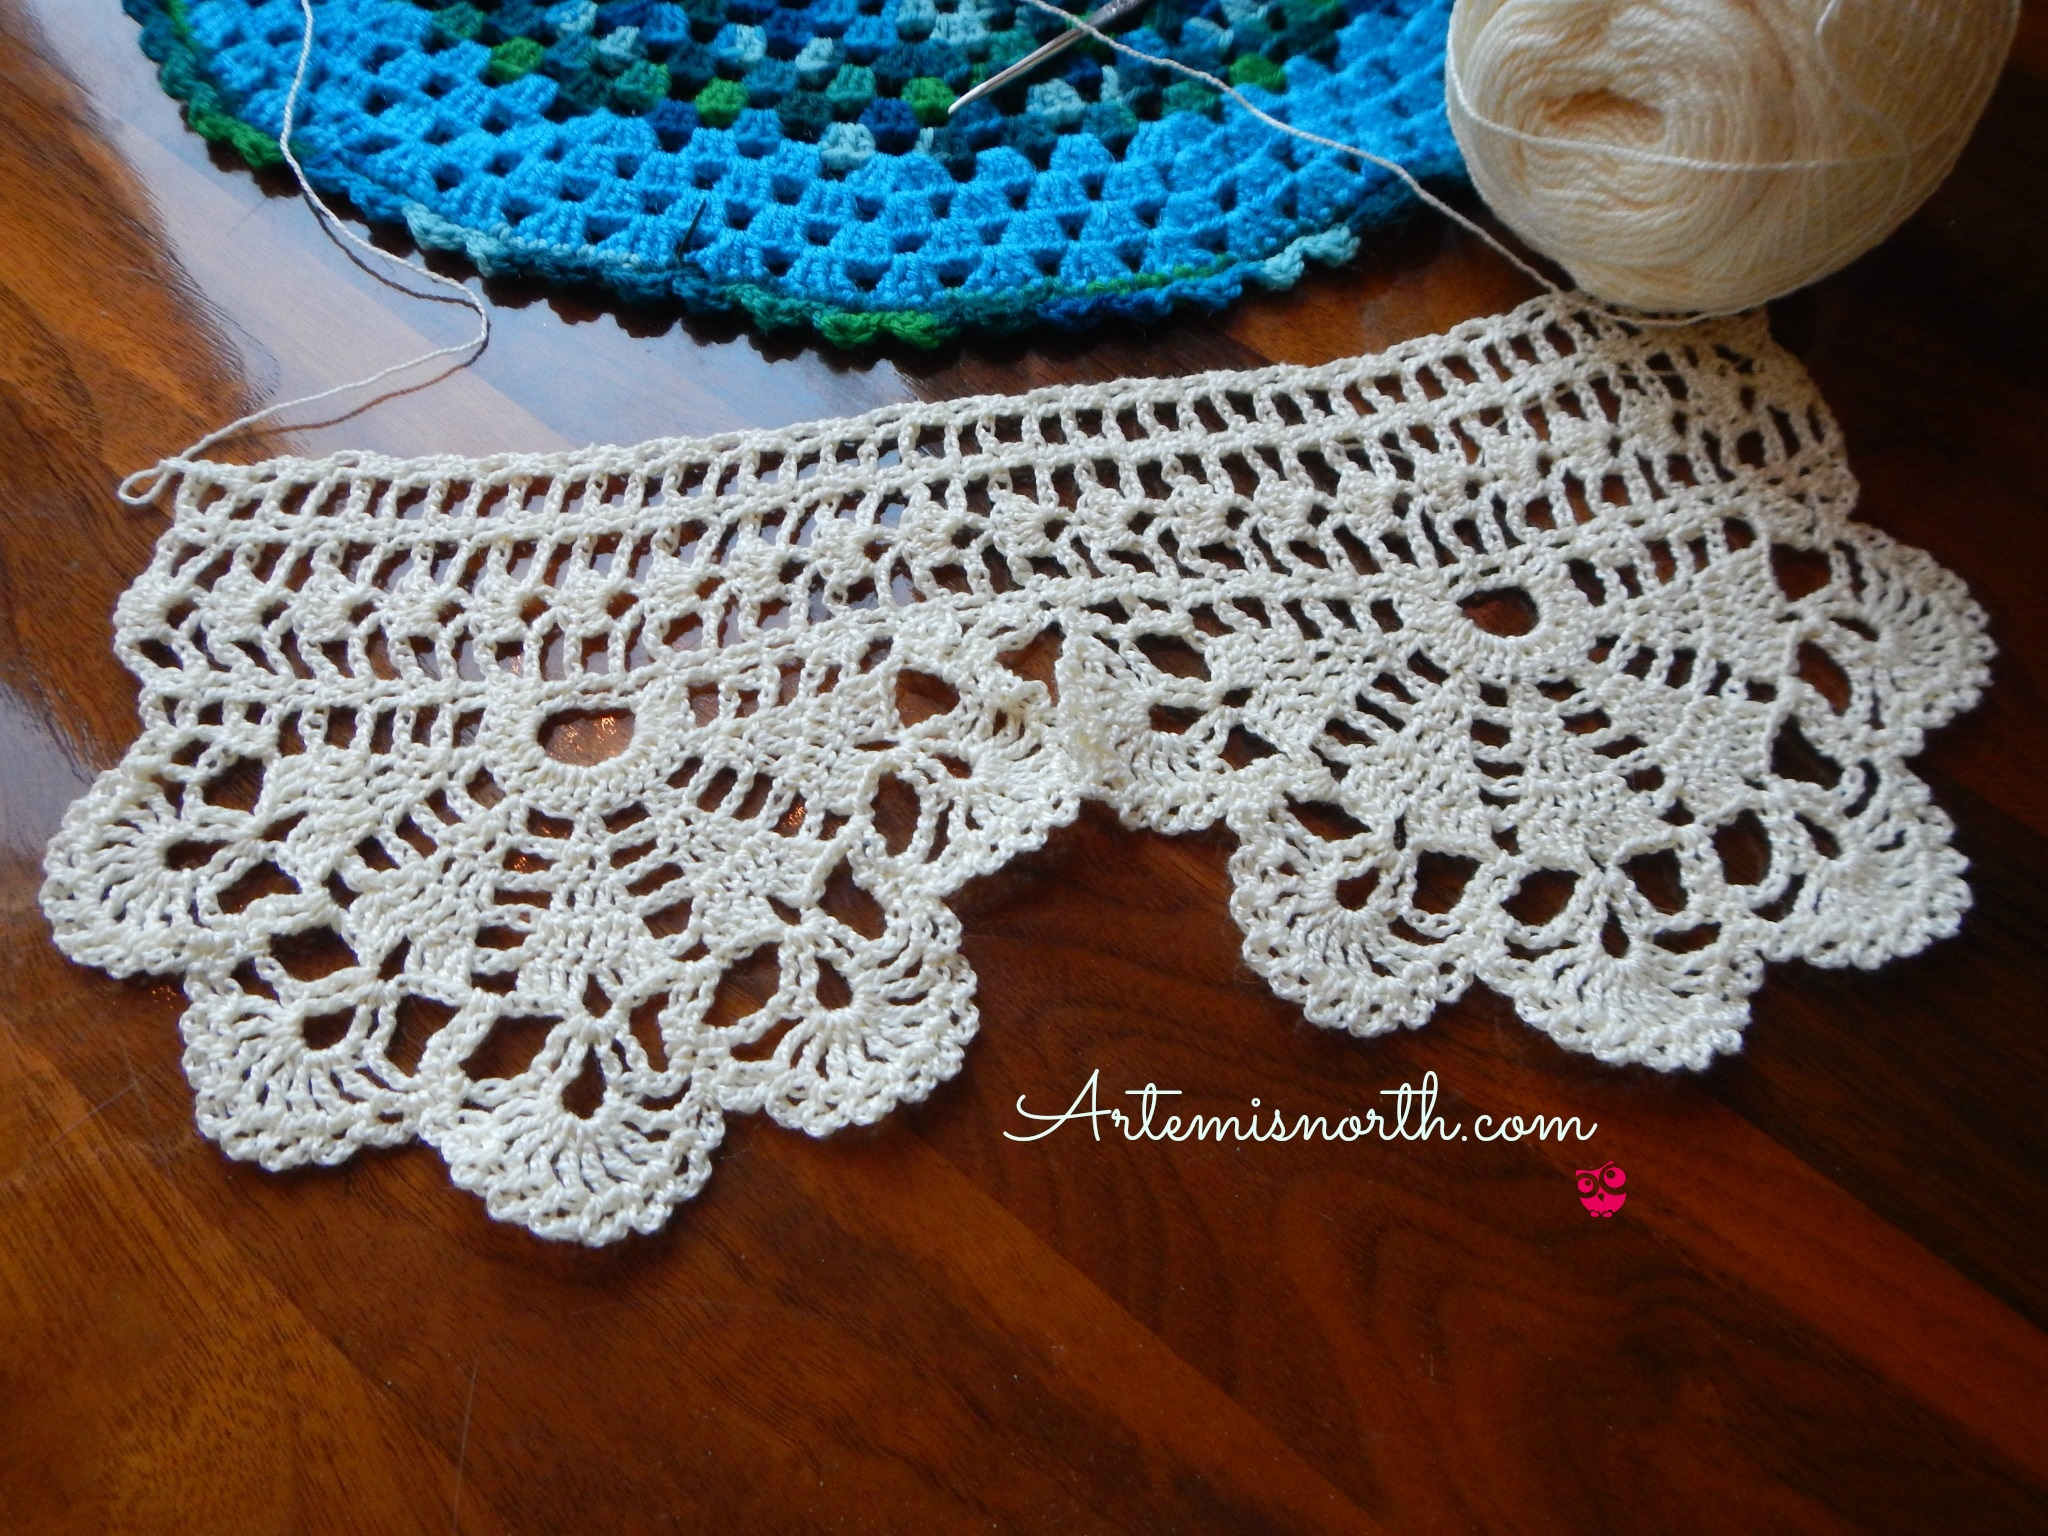 Crocheting Lace Patterns : Free Crochet Lace Edging Patterns Free Crochet Pattern Wide